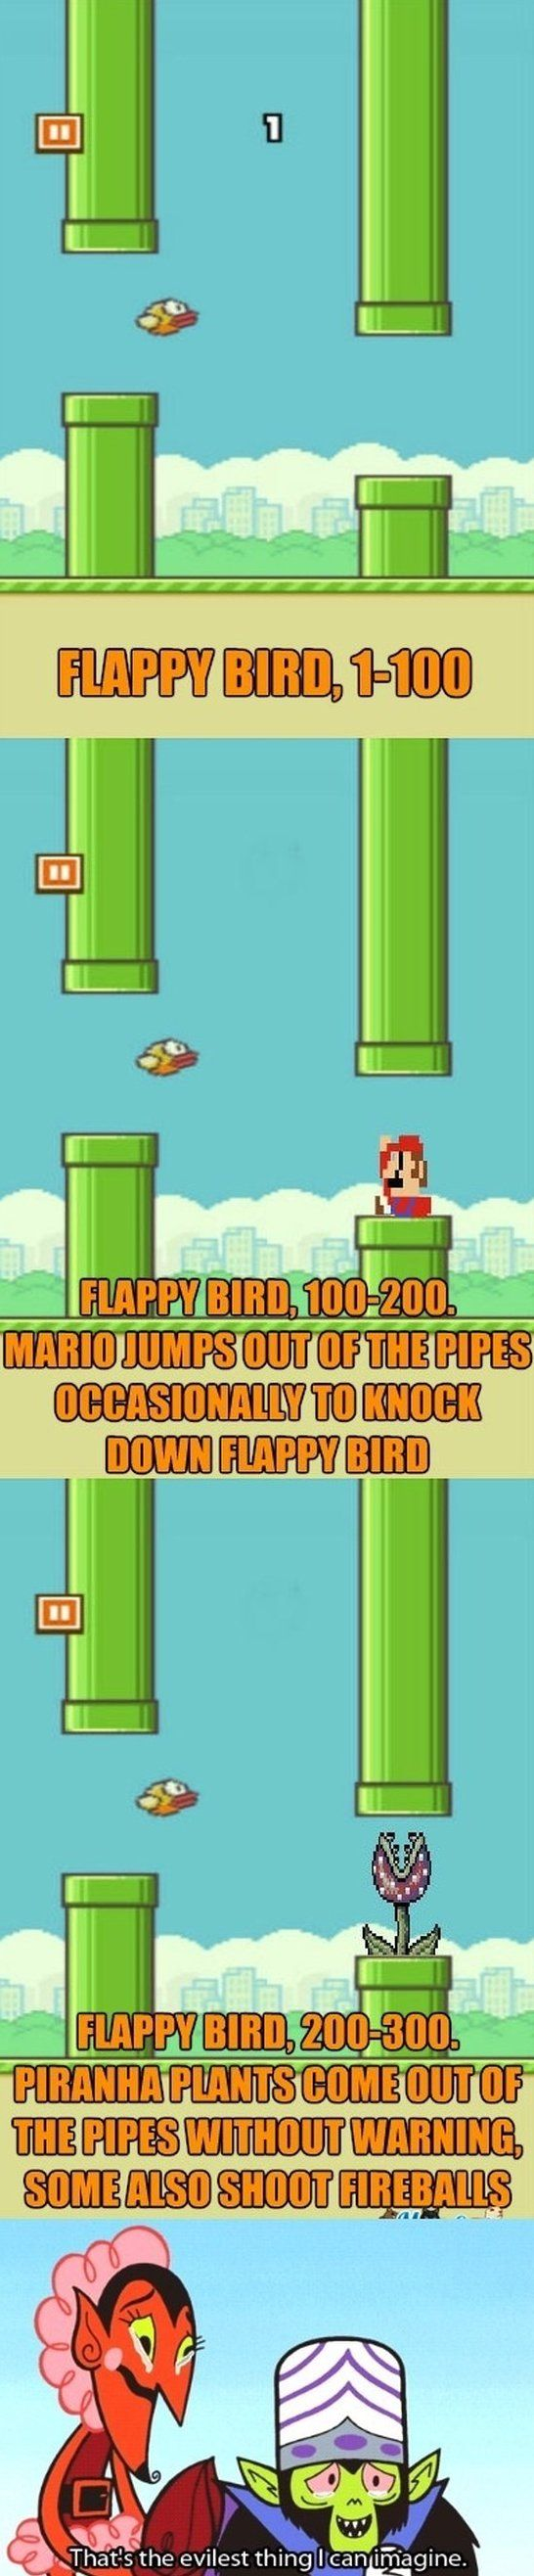 Flappy Bird...because I will never get past 3, but now I know...